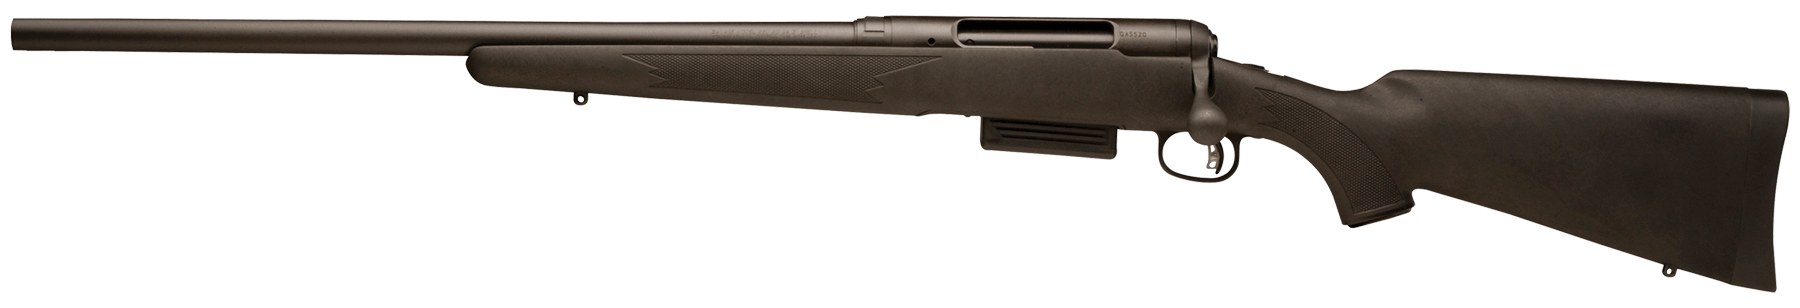 Savage 220 Slug Gun - Left Handed Bolt Action Shotgun 3'' 20 Gauge 22'' Blued Steel - Synthetic - Black